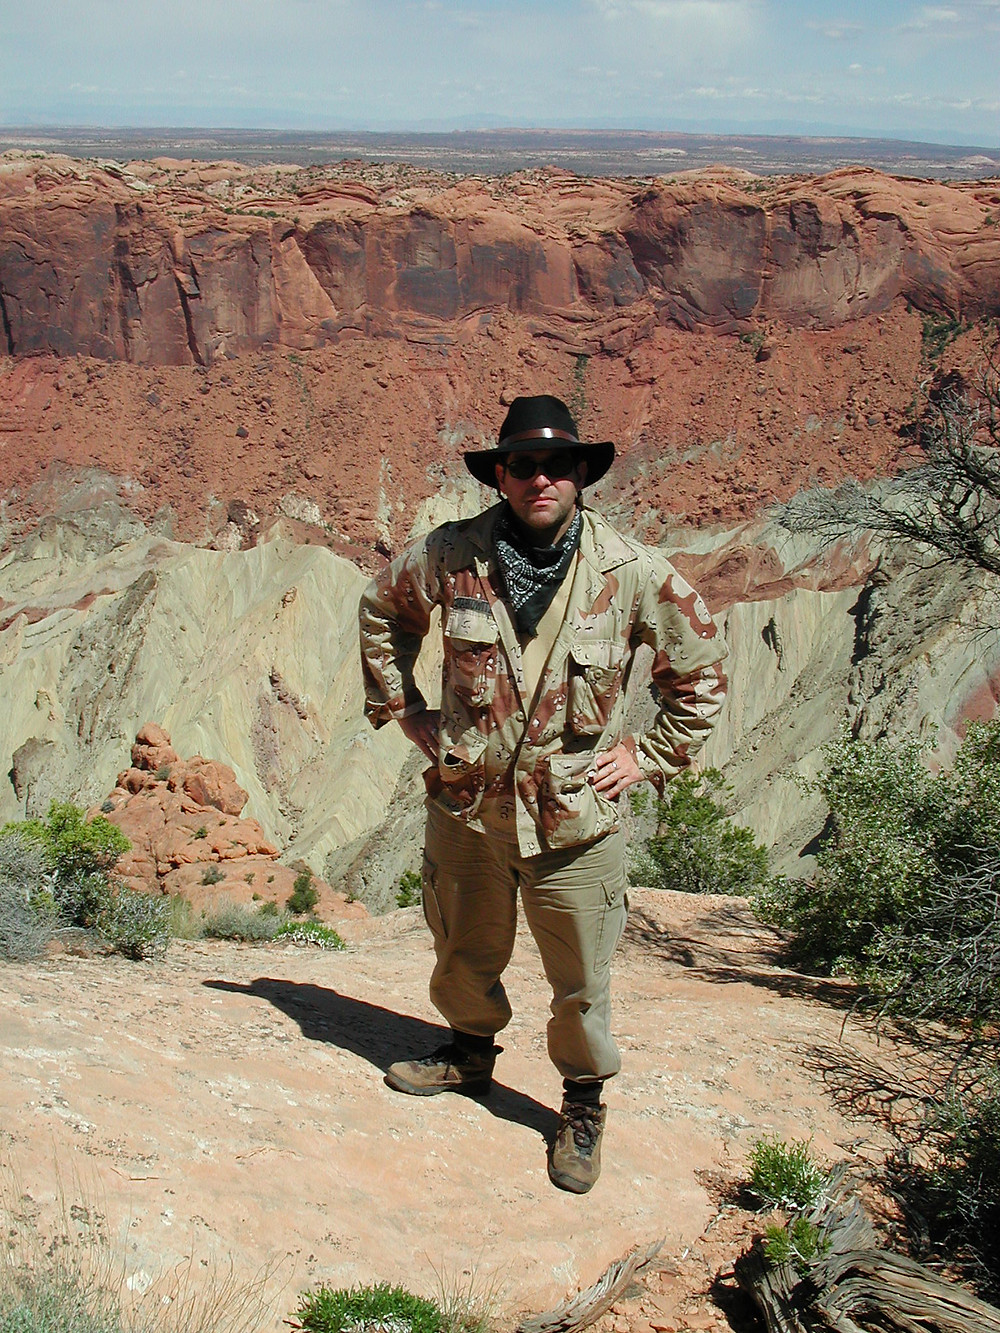 Adventurer Geoff Notkin on the rim of the Upheaval Dome, Alamo Breccia Expedition, 2001.   Photo © Desert Owl Productions.